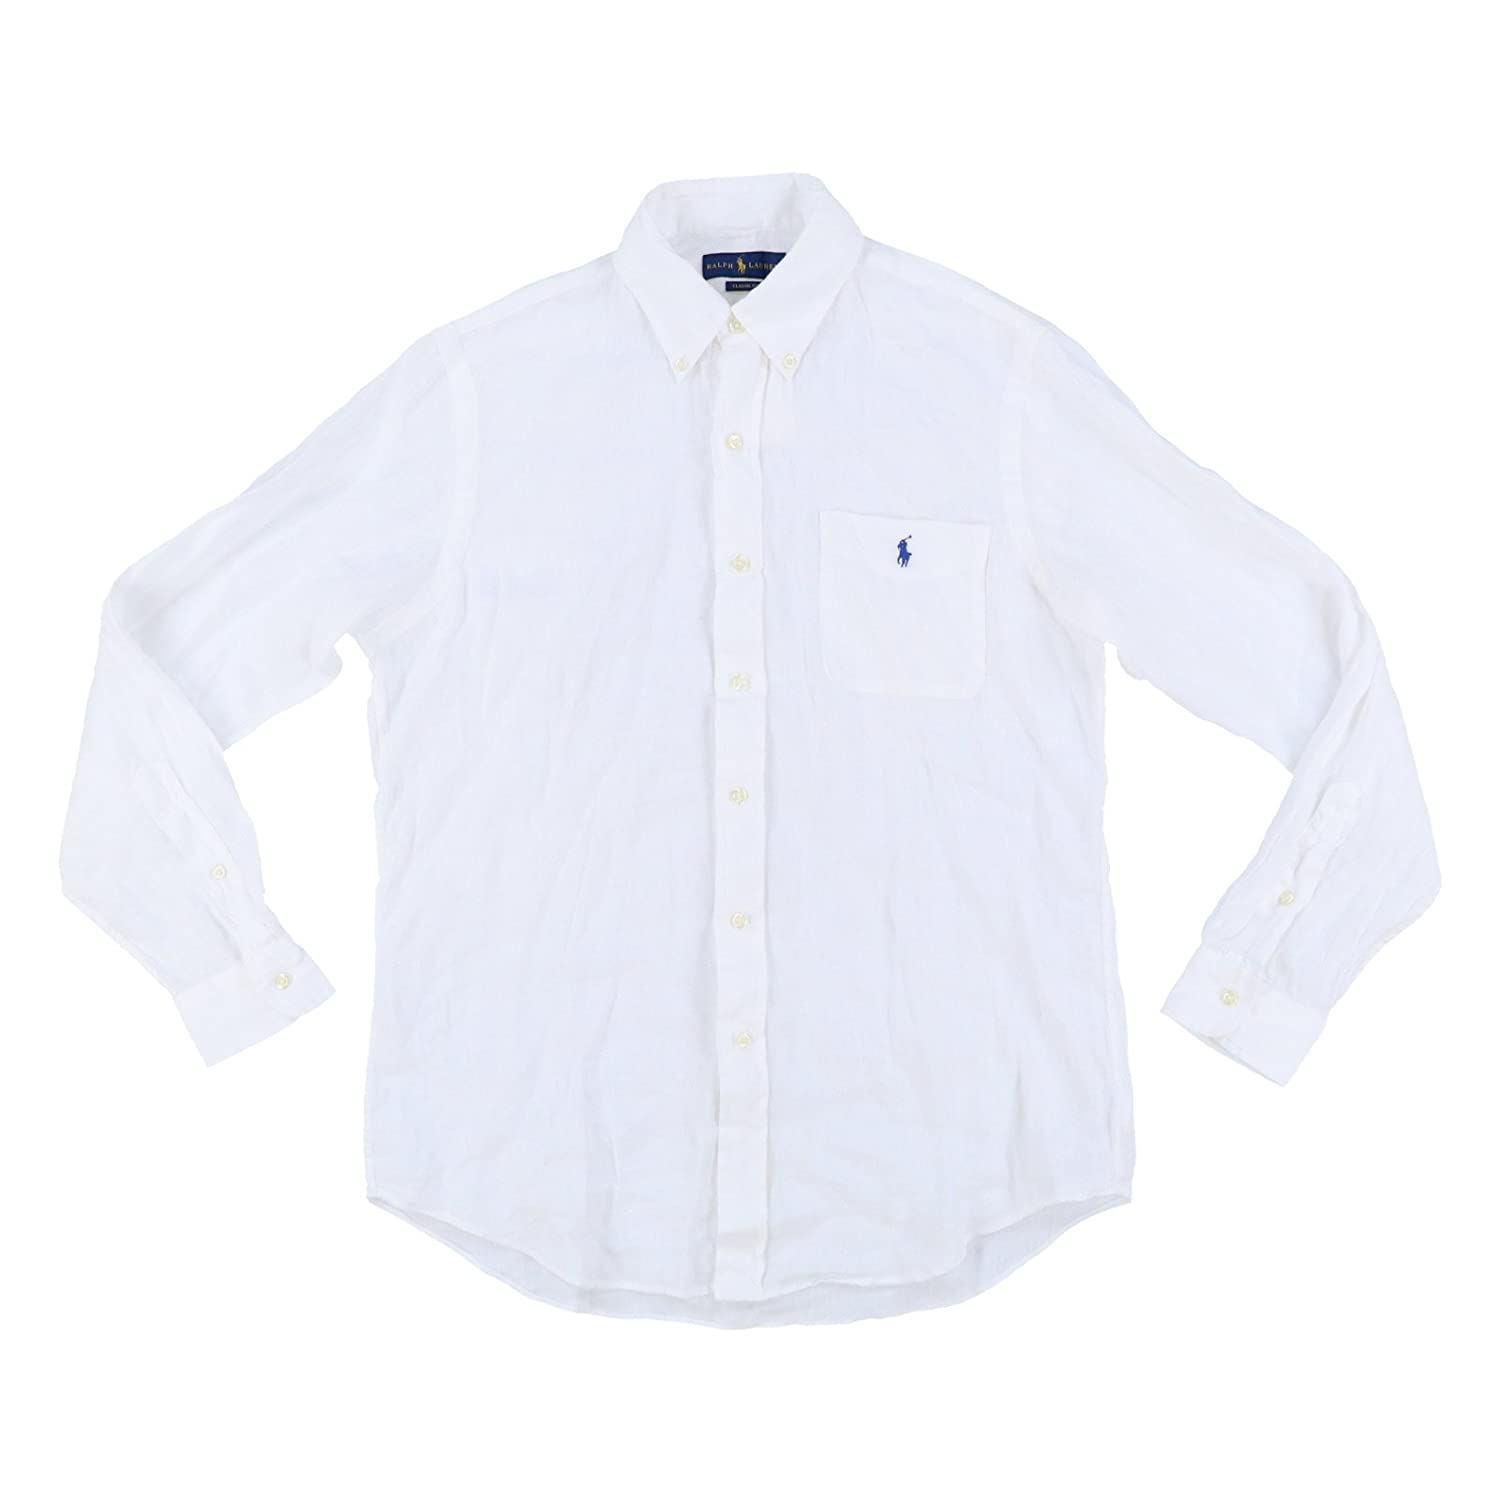 852b6b3f RALPH LAUREN Mens Button Up Long Sleeve Linen Shirt